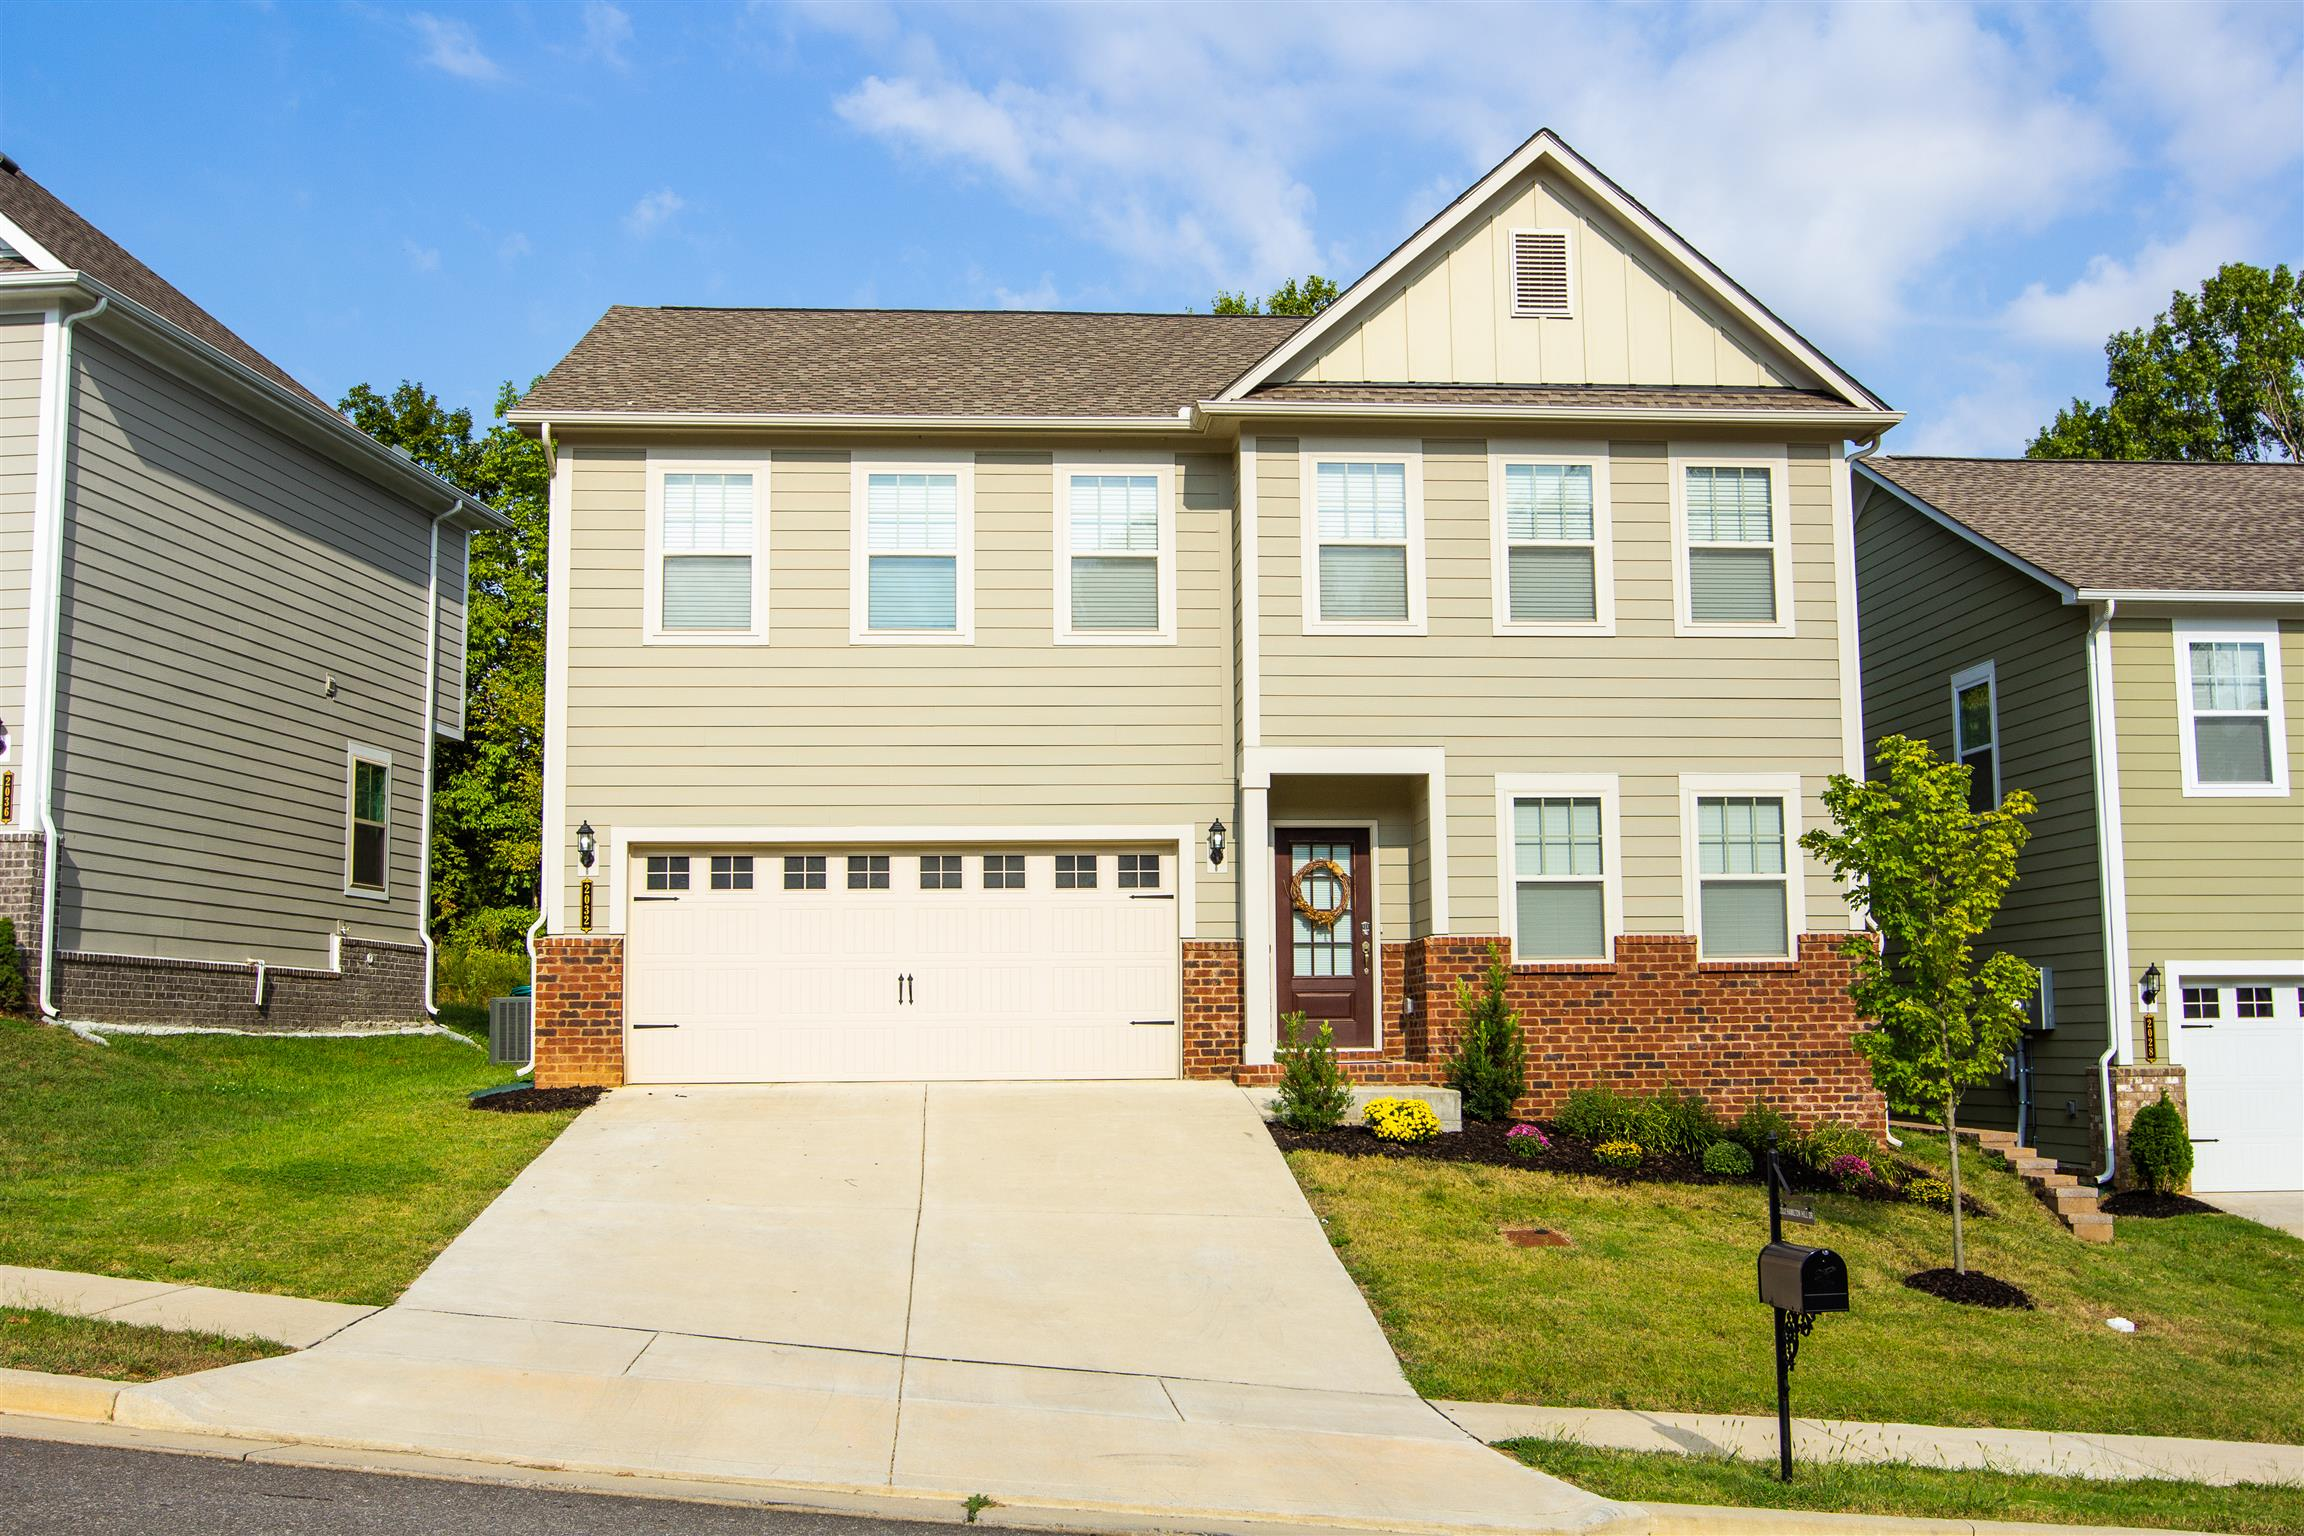 2032 Hamilton Hill Dr, Nashville-Antioch in Davidson County County, TN 37013 Home for Sale